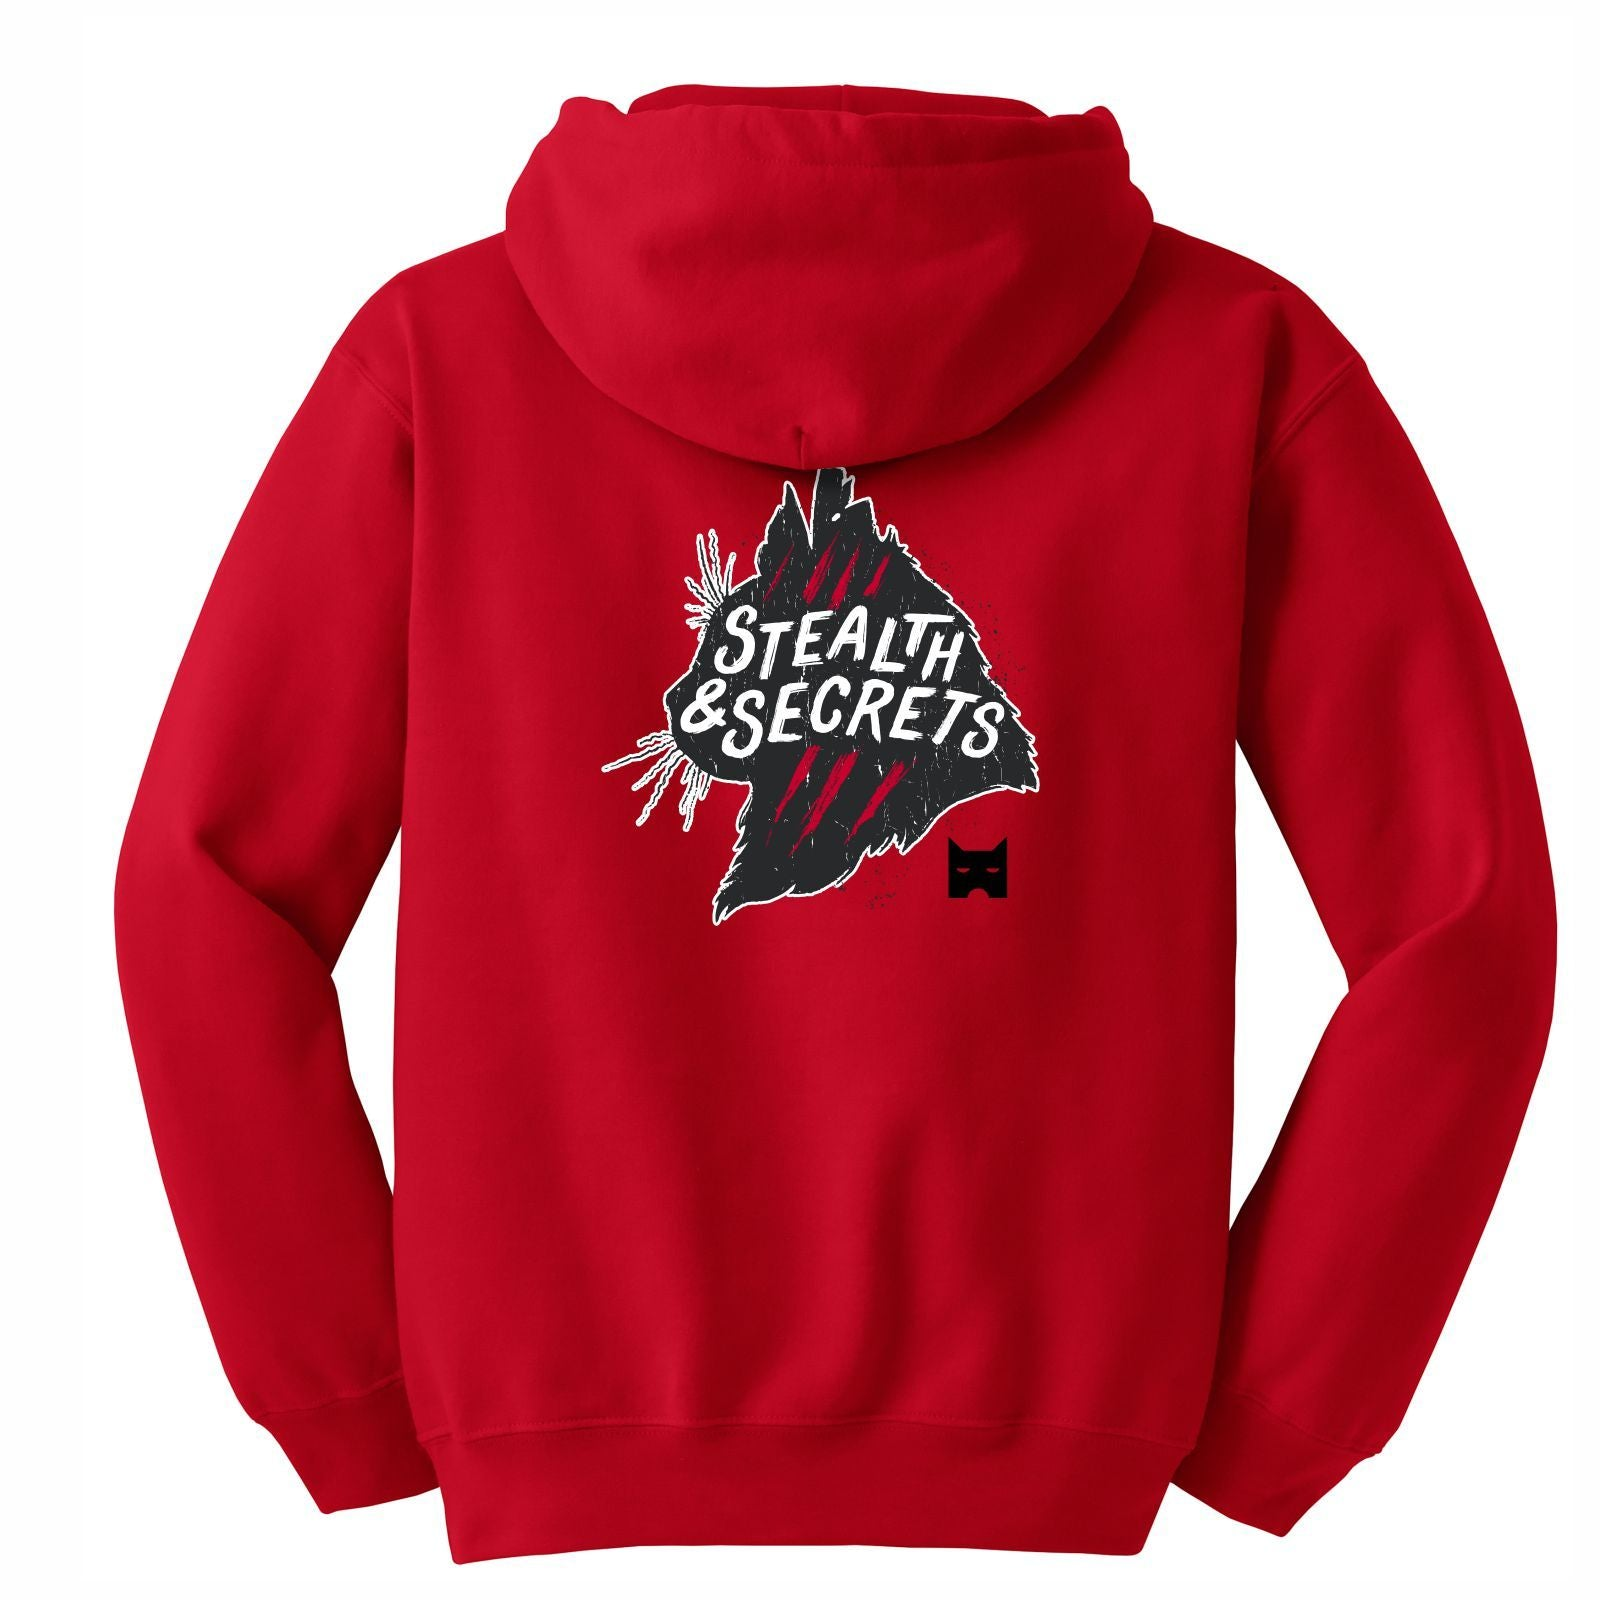 WARRIORCATS: SHADOWCLAN Adult Fleece Hoody - Red